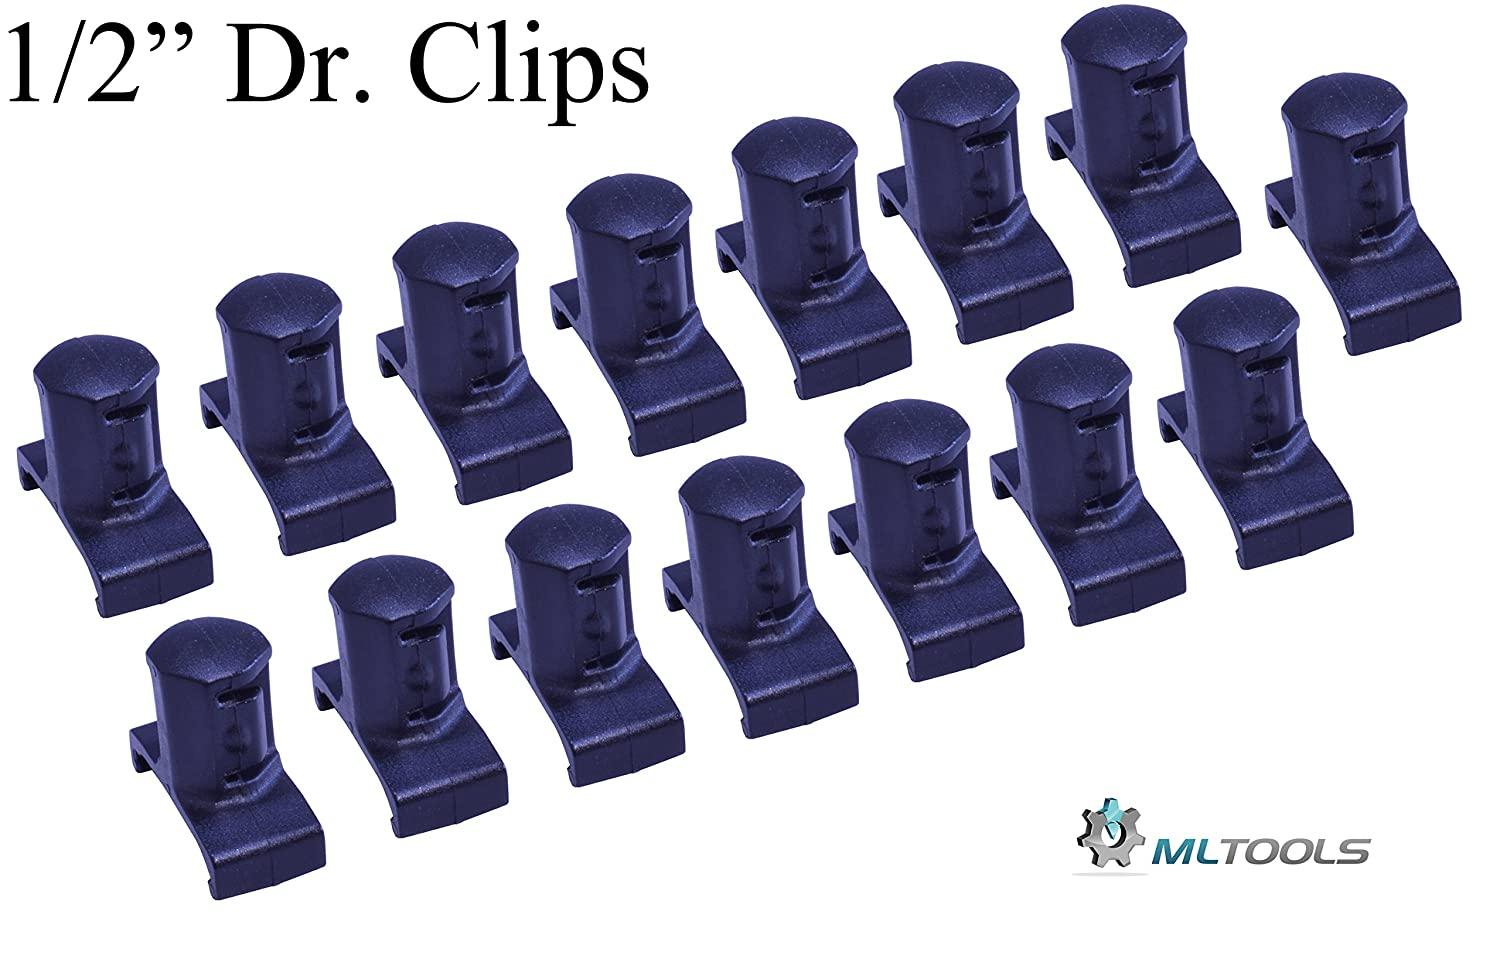 ML TOOLS 3//8 Inch 15 piece Black Dura pro Twist Lock Socket Organizer Clips with 96 ID Stickers Made in usa T8254-3//8-Clips